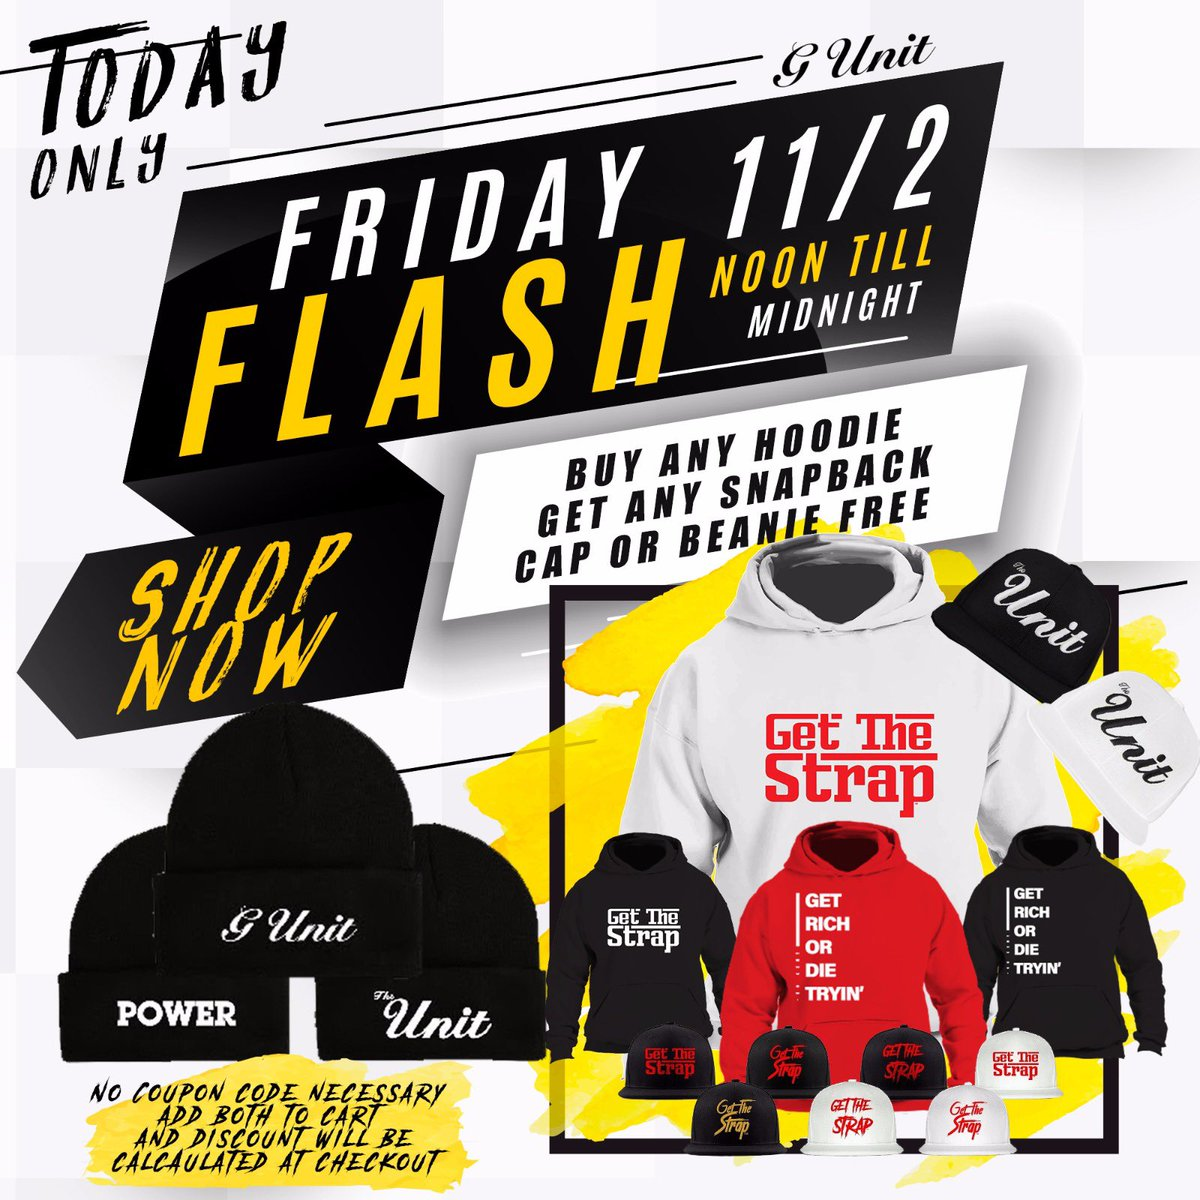 TODAY ONLY| Buy Any Hoodie & Get any SnapBack or Beanie FREE #FlashSale | https://t.co/fOHBnoBOTi https://t.co/FS5LBV1aqh